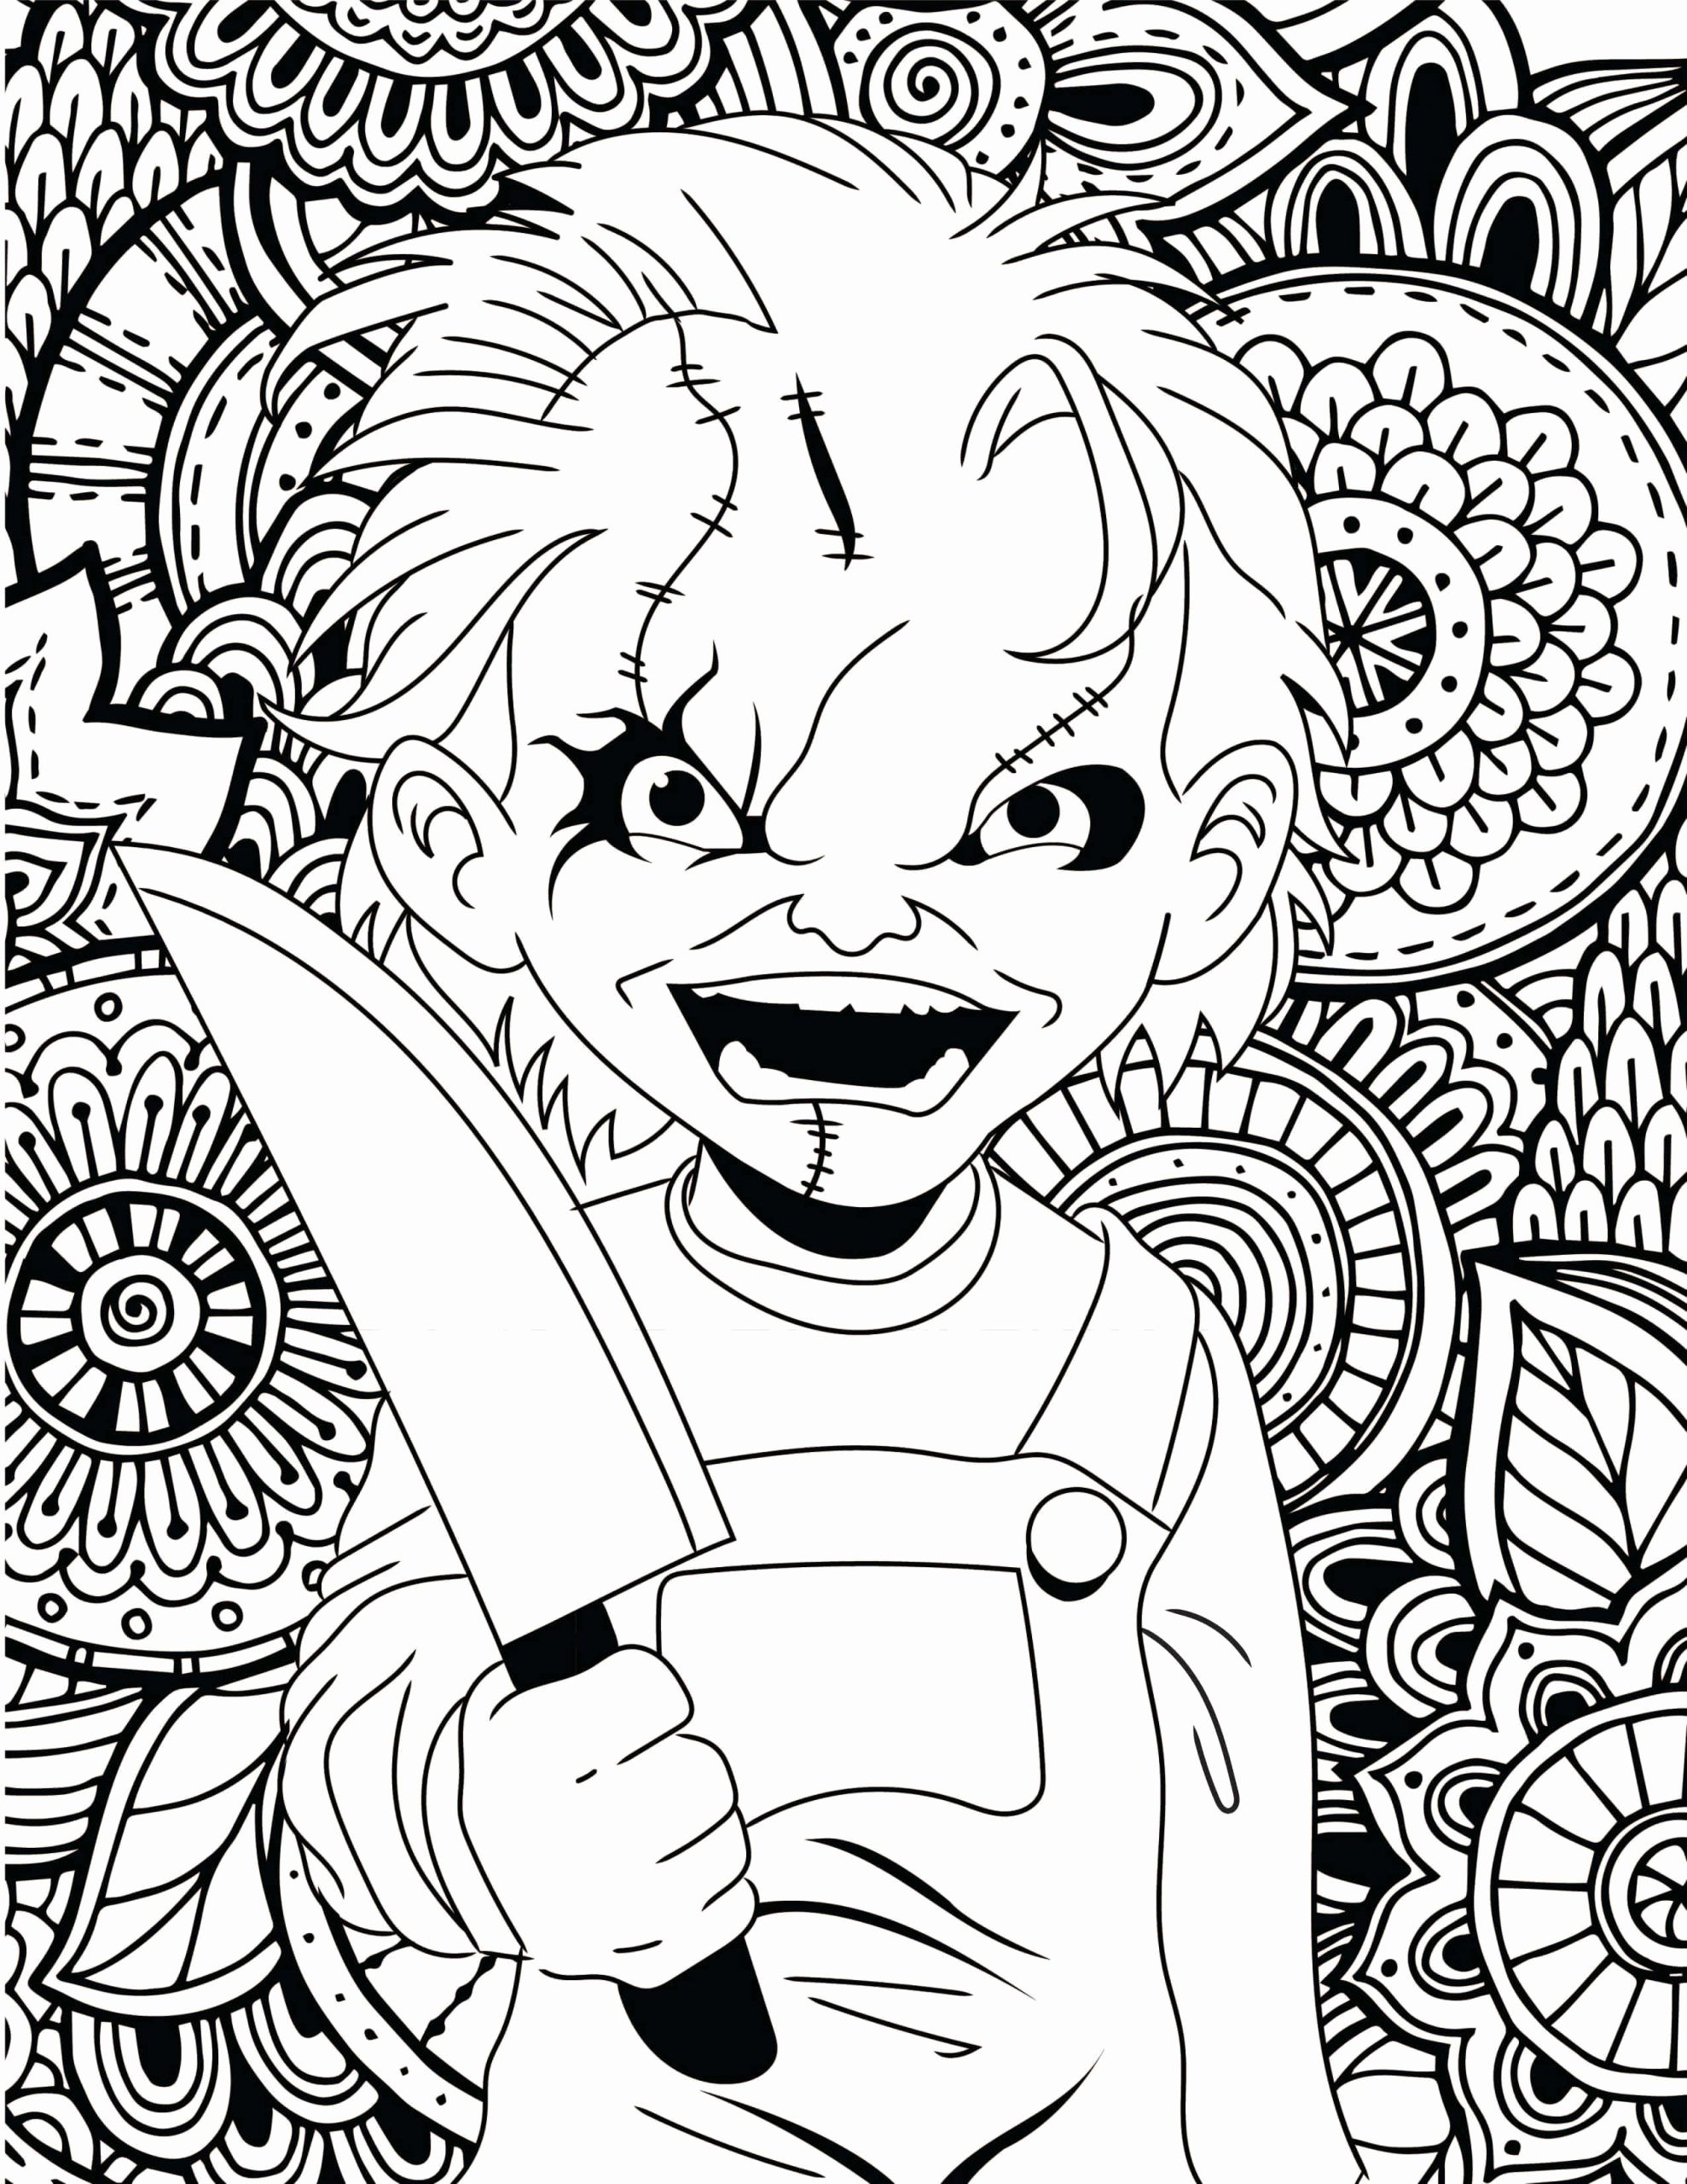 Super Hard Coloring Pages For Kids Penny Wise In 2020 Halloween Coloring Pages Printable Halloween Coloring Skull Coloring Pages